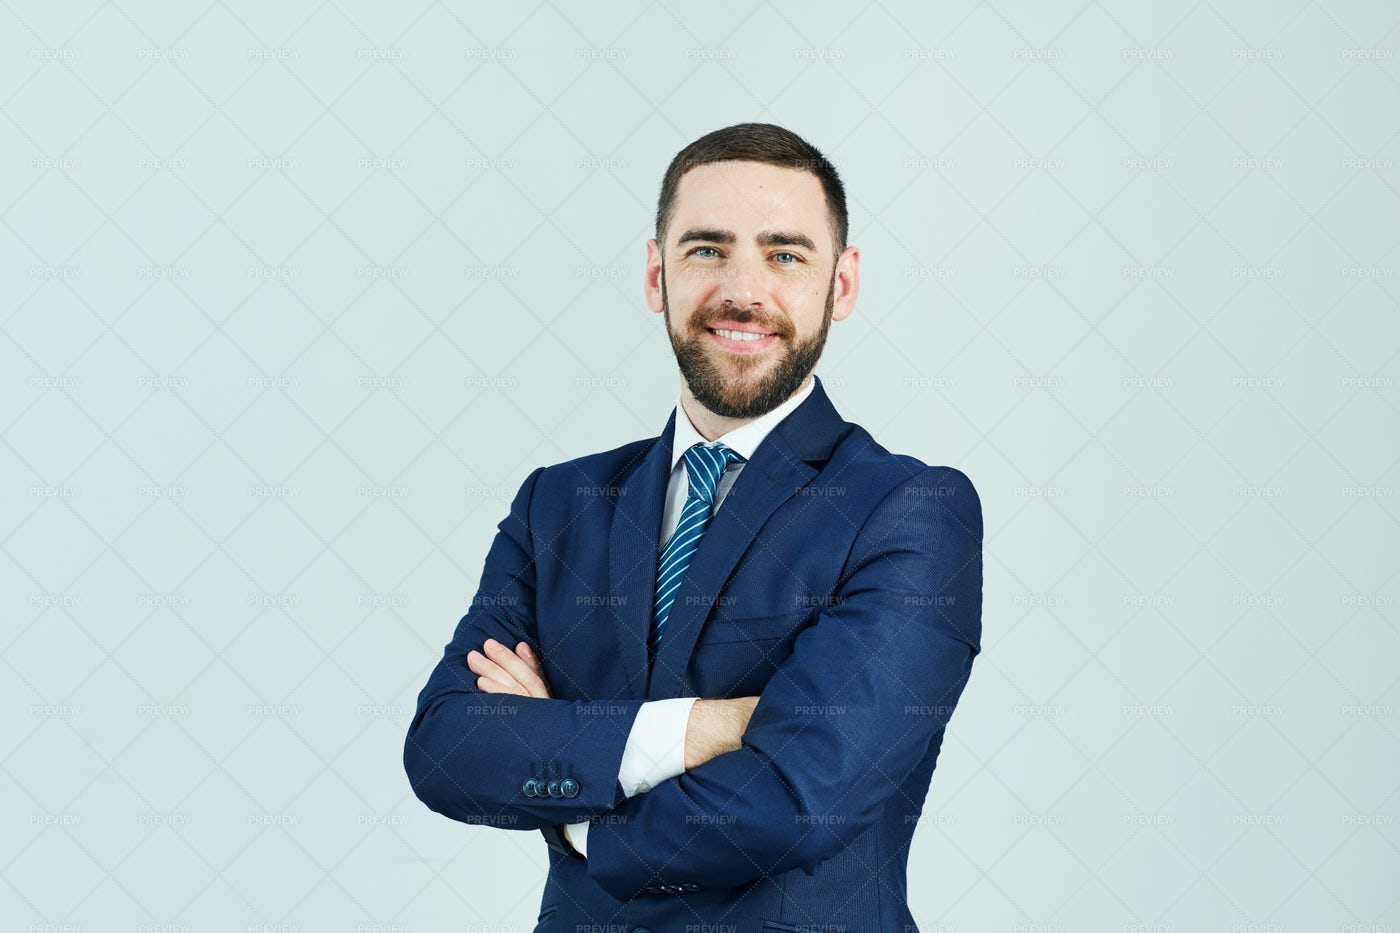 Smiling Successful Man In Suit: Stock Photos